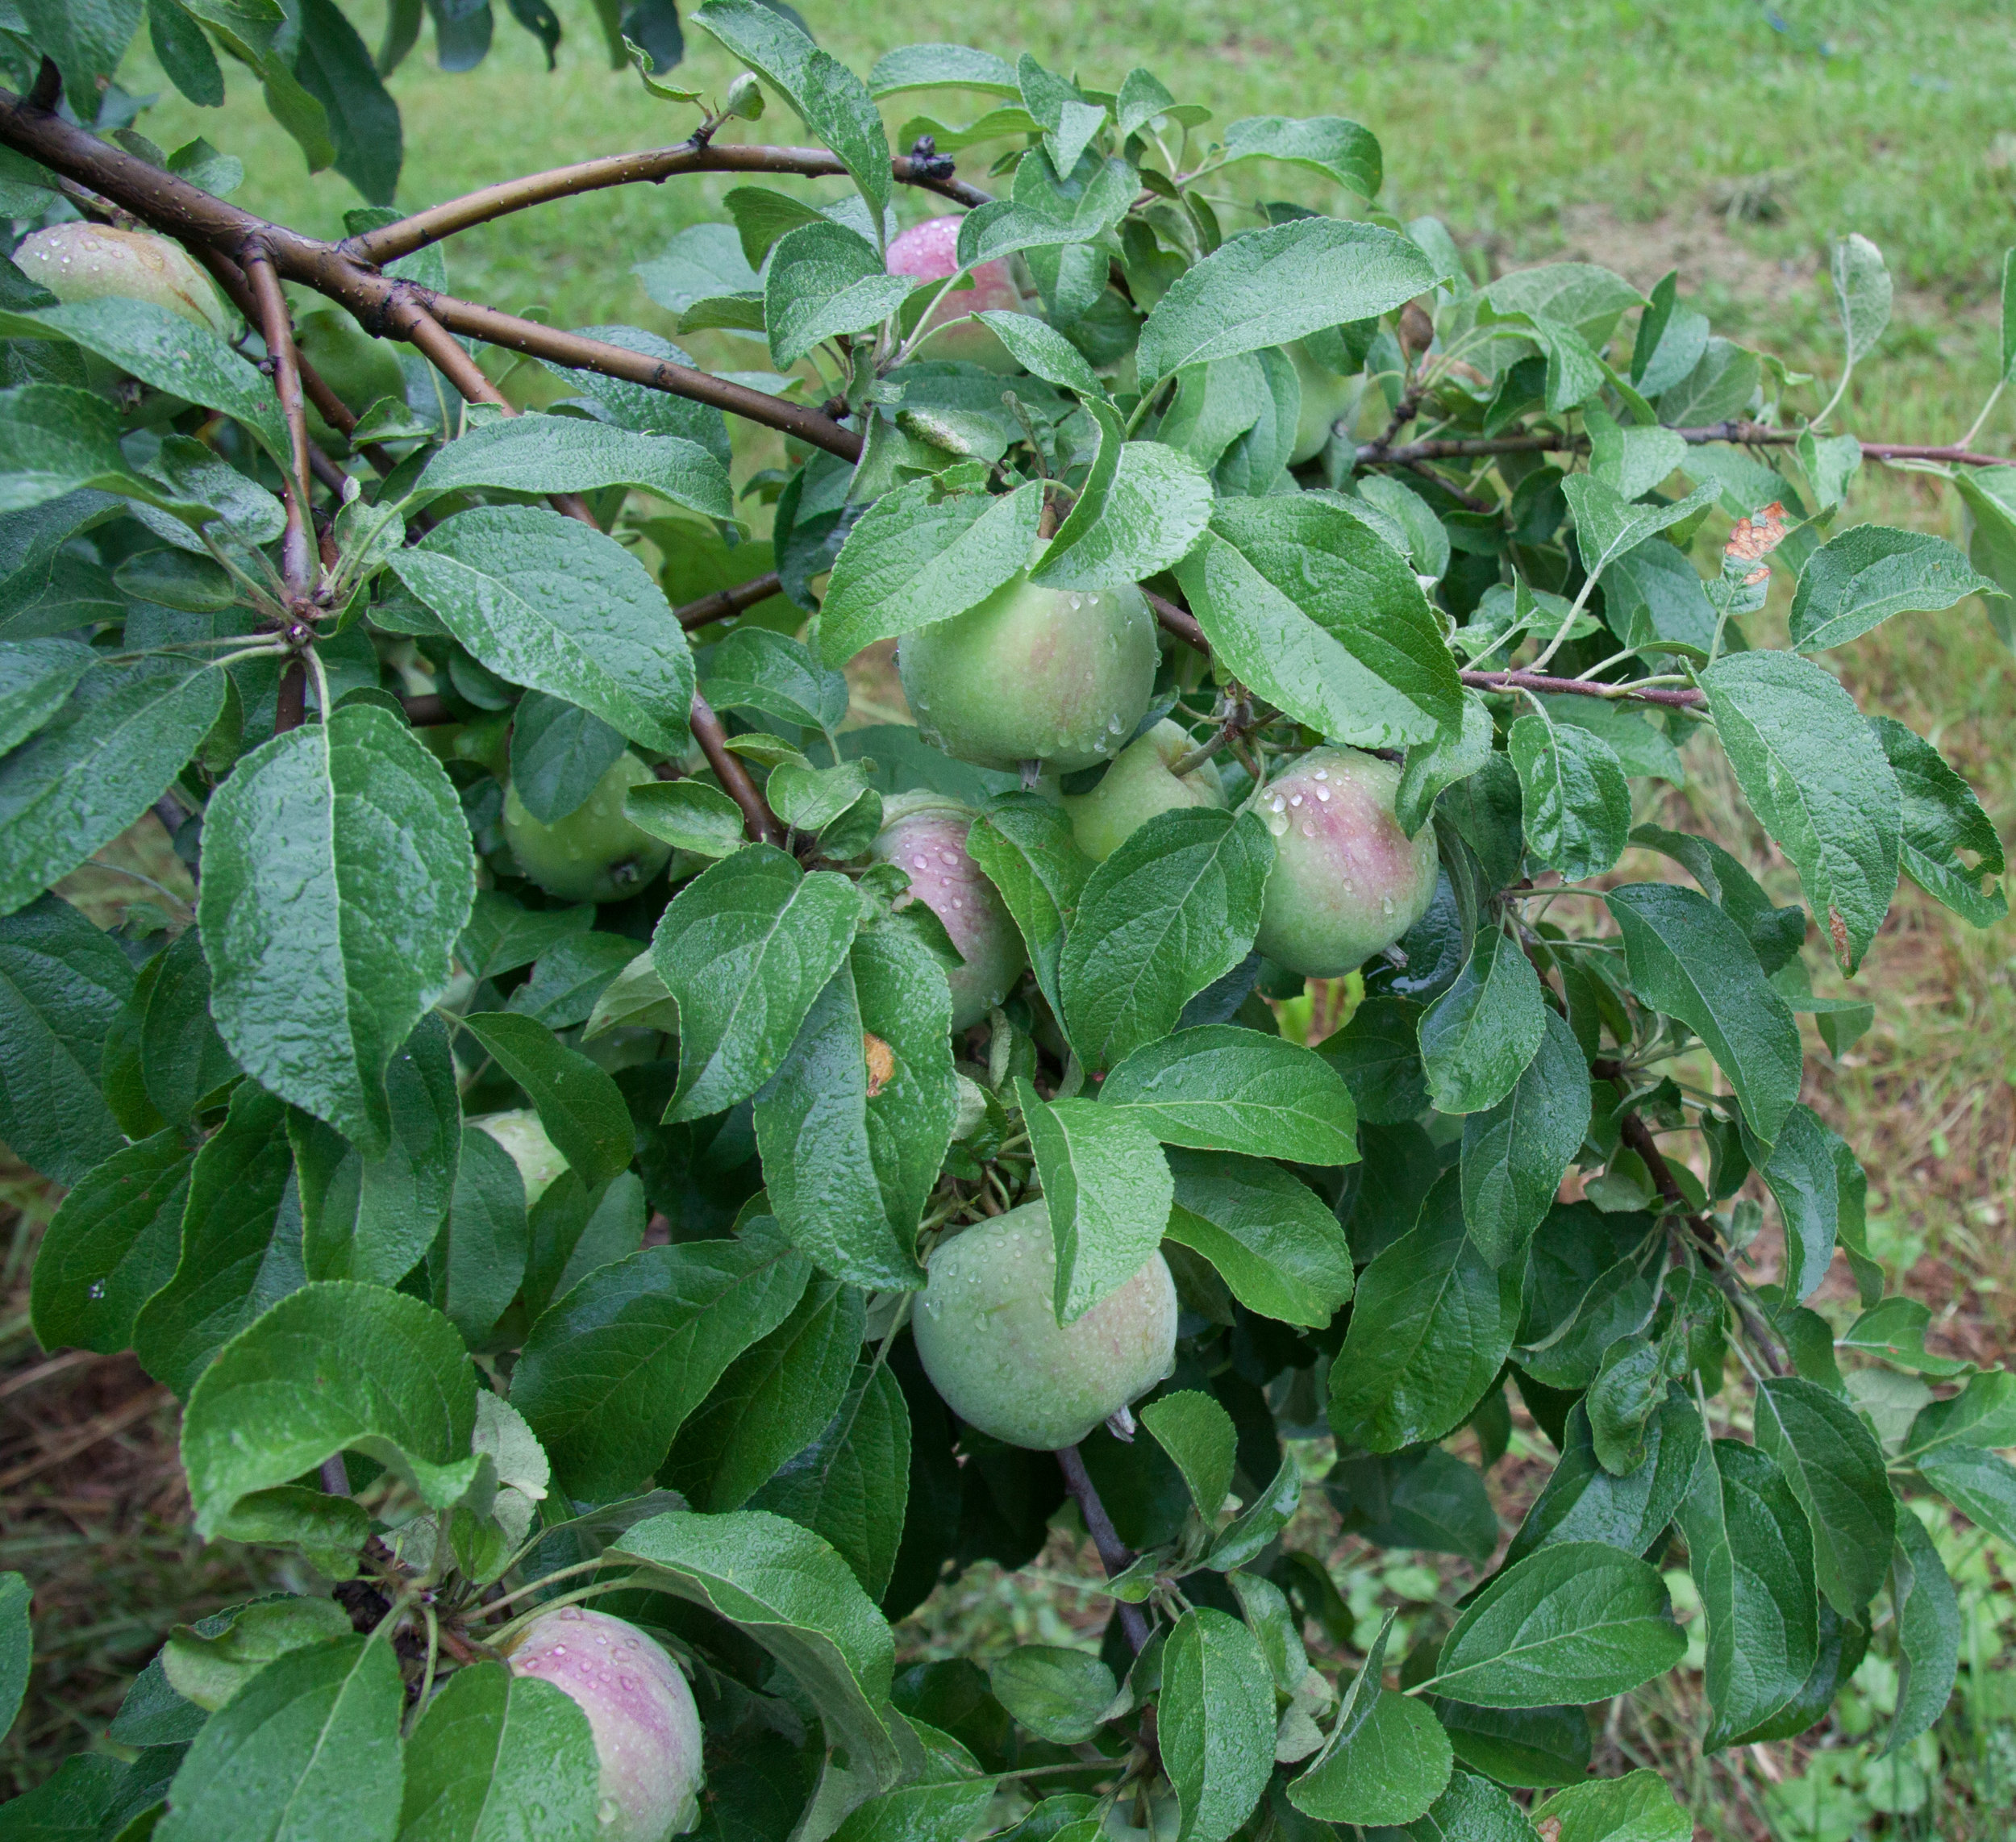 Morning dew on Williams Pride, one of our early apples.